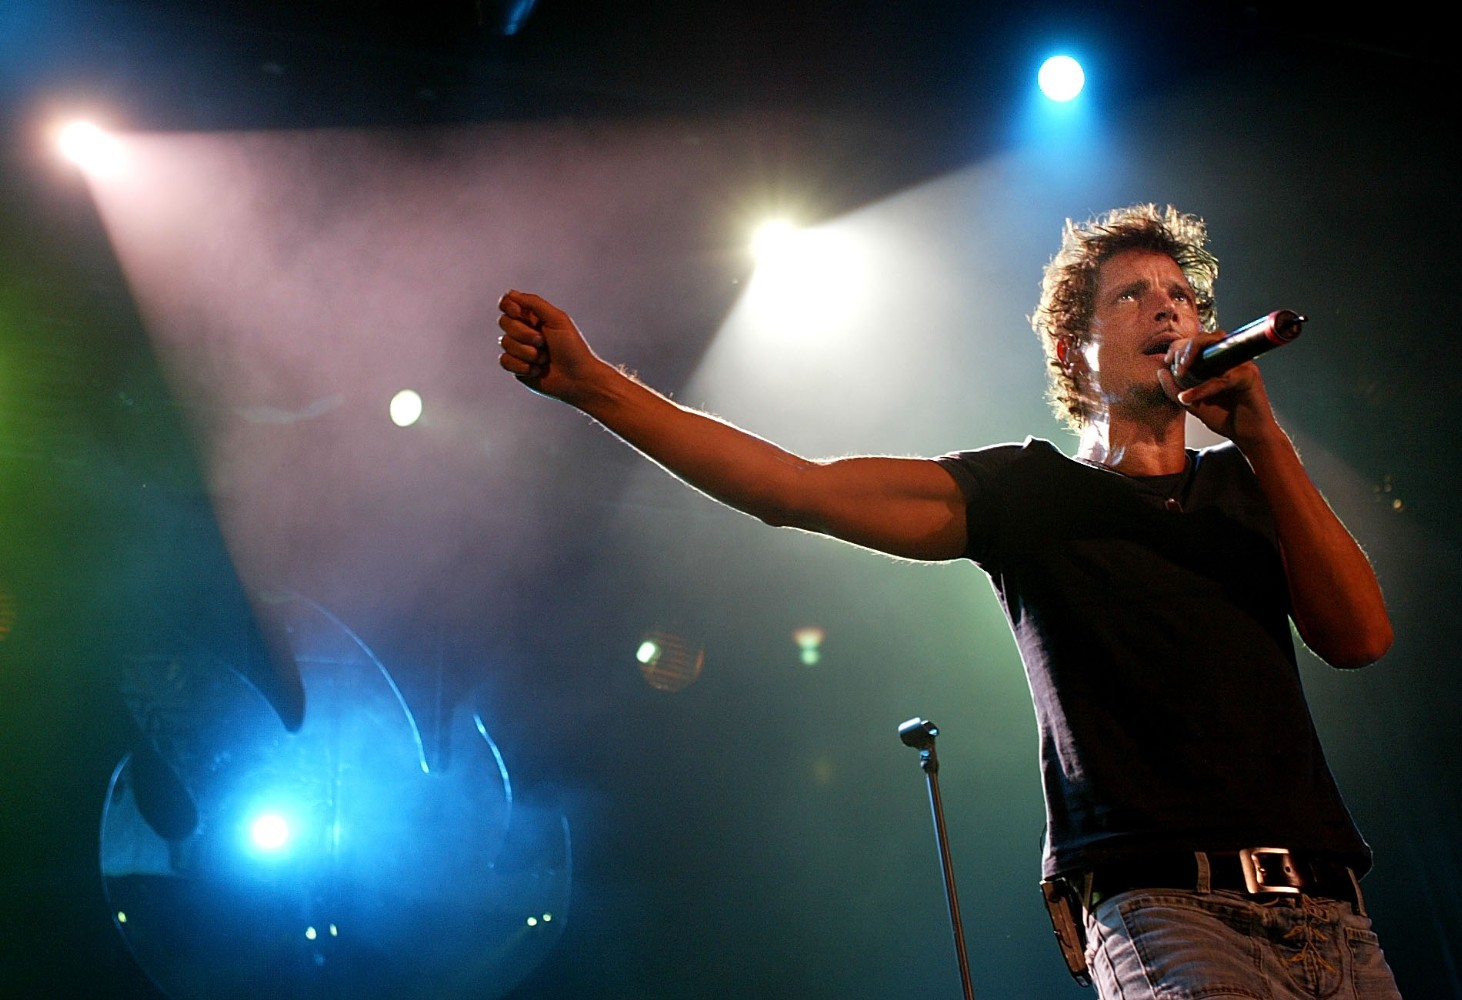 Revisiting Chris Cornell Through His Most Memorable Musical Moments